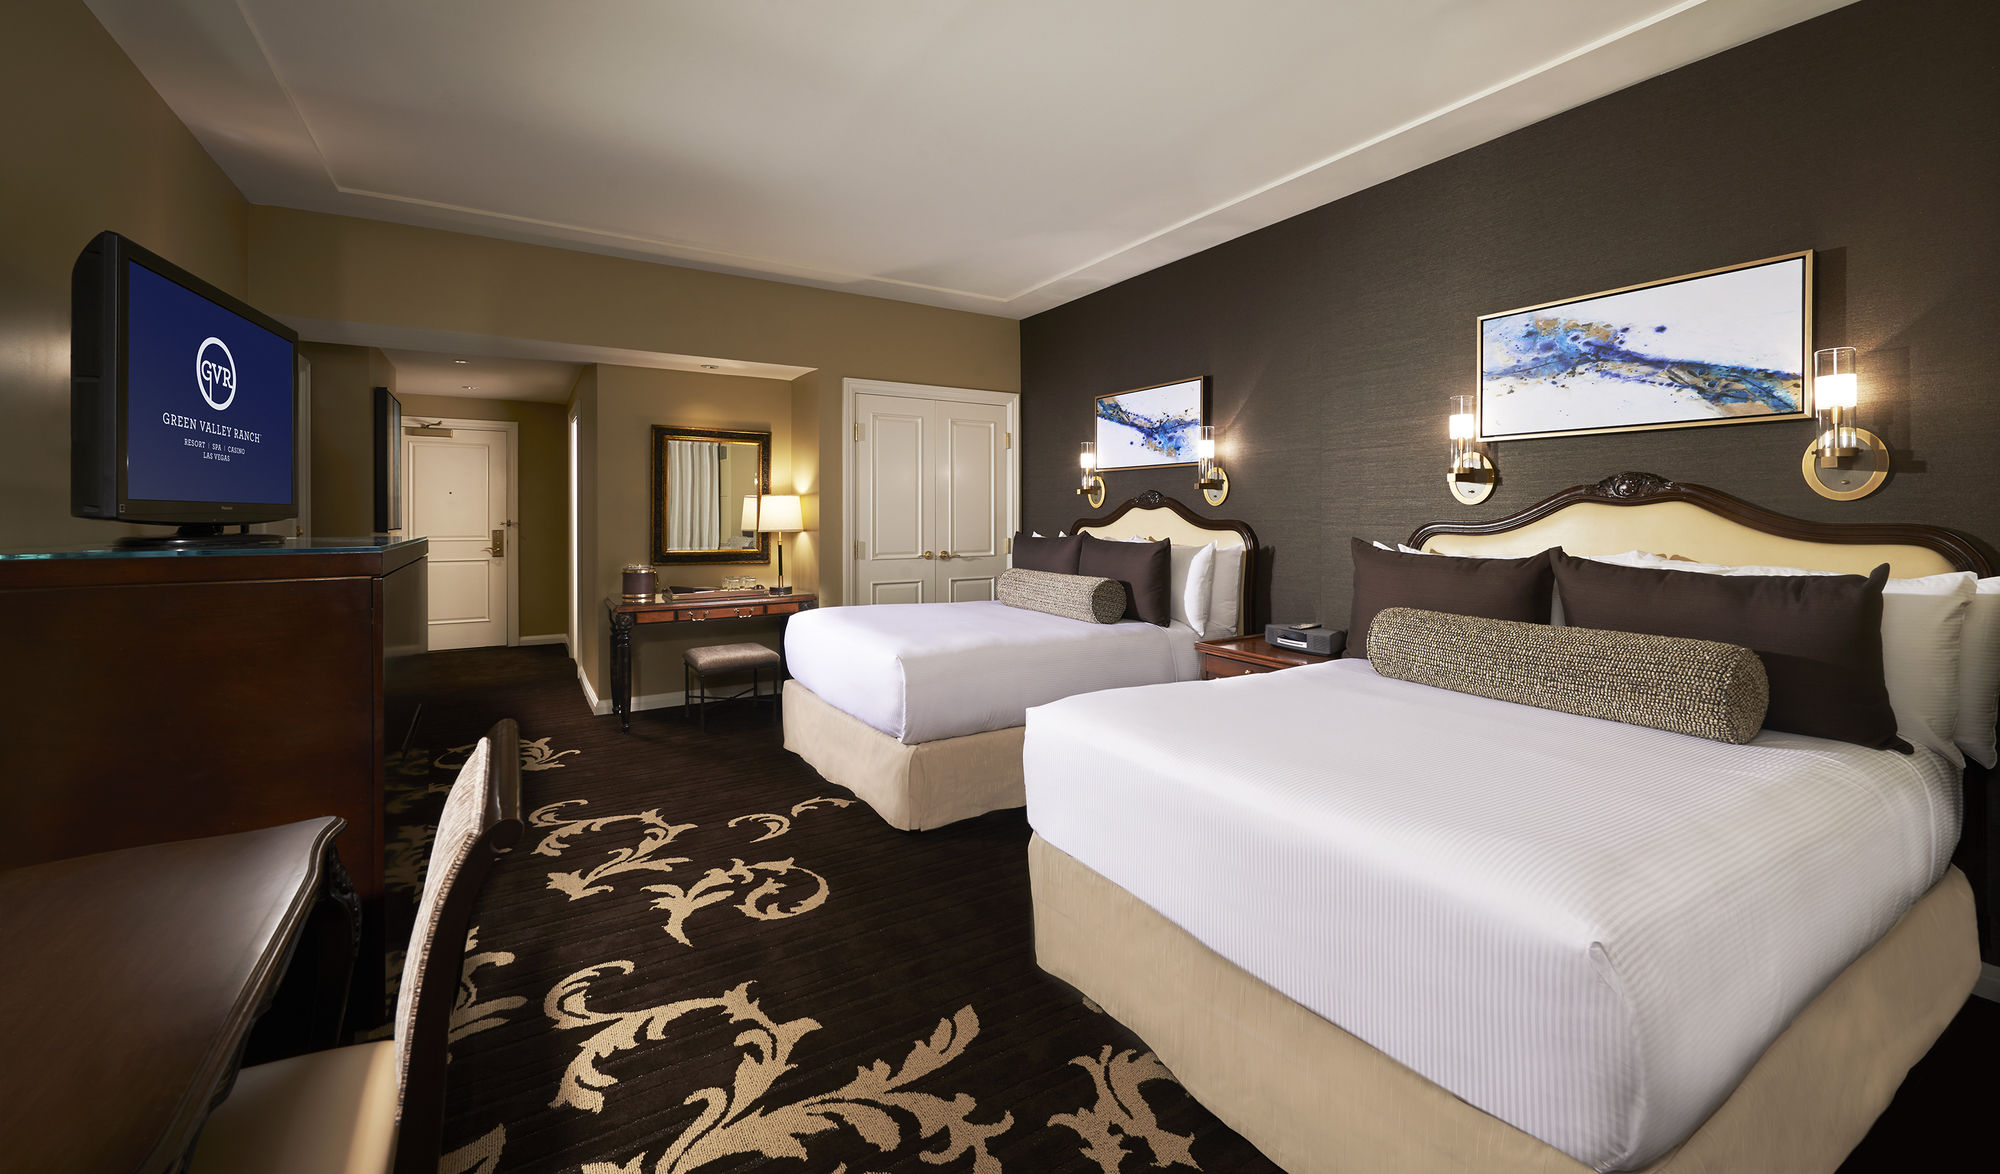 smoking deals with az inn comfort beds green hotel two in photos comforter room non reviews us valley double